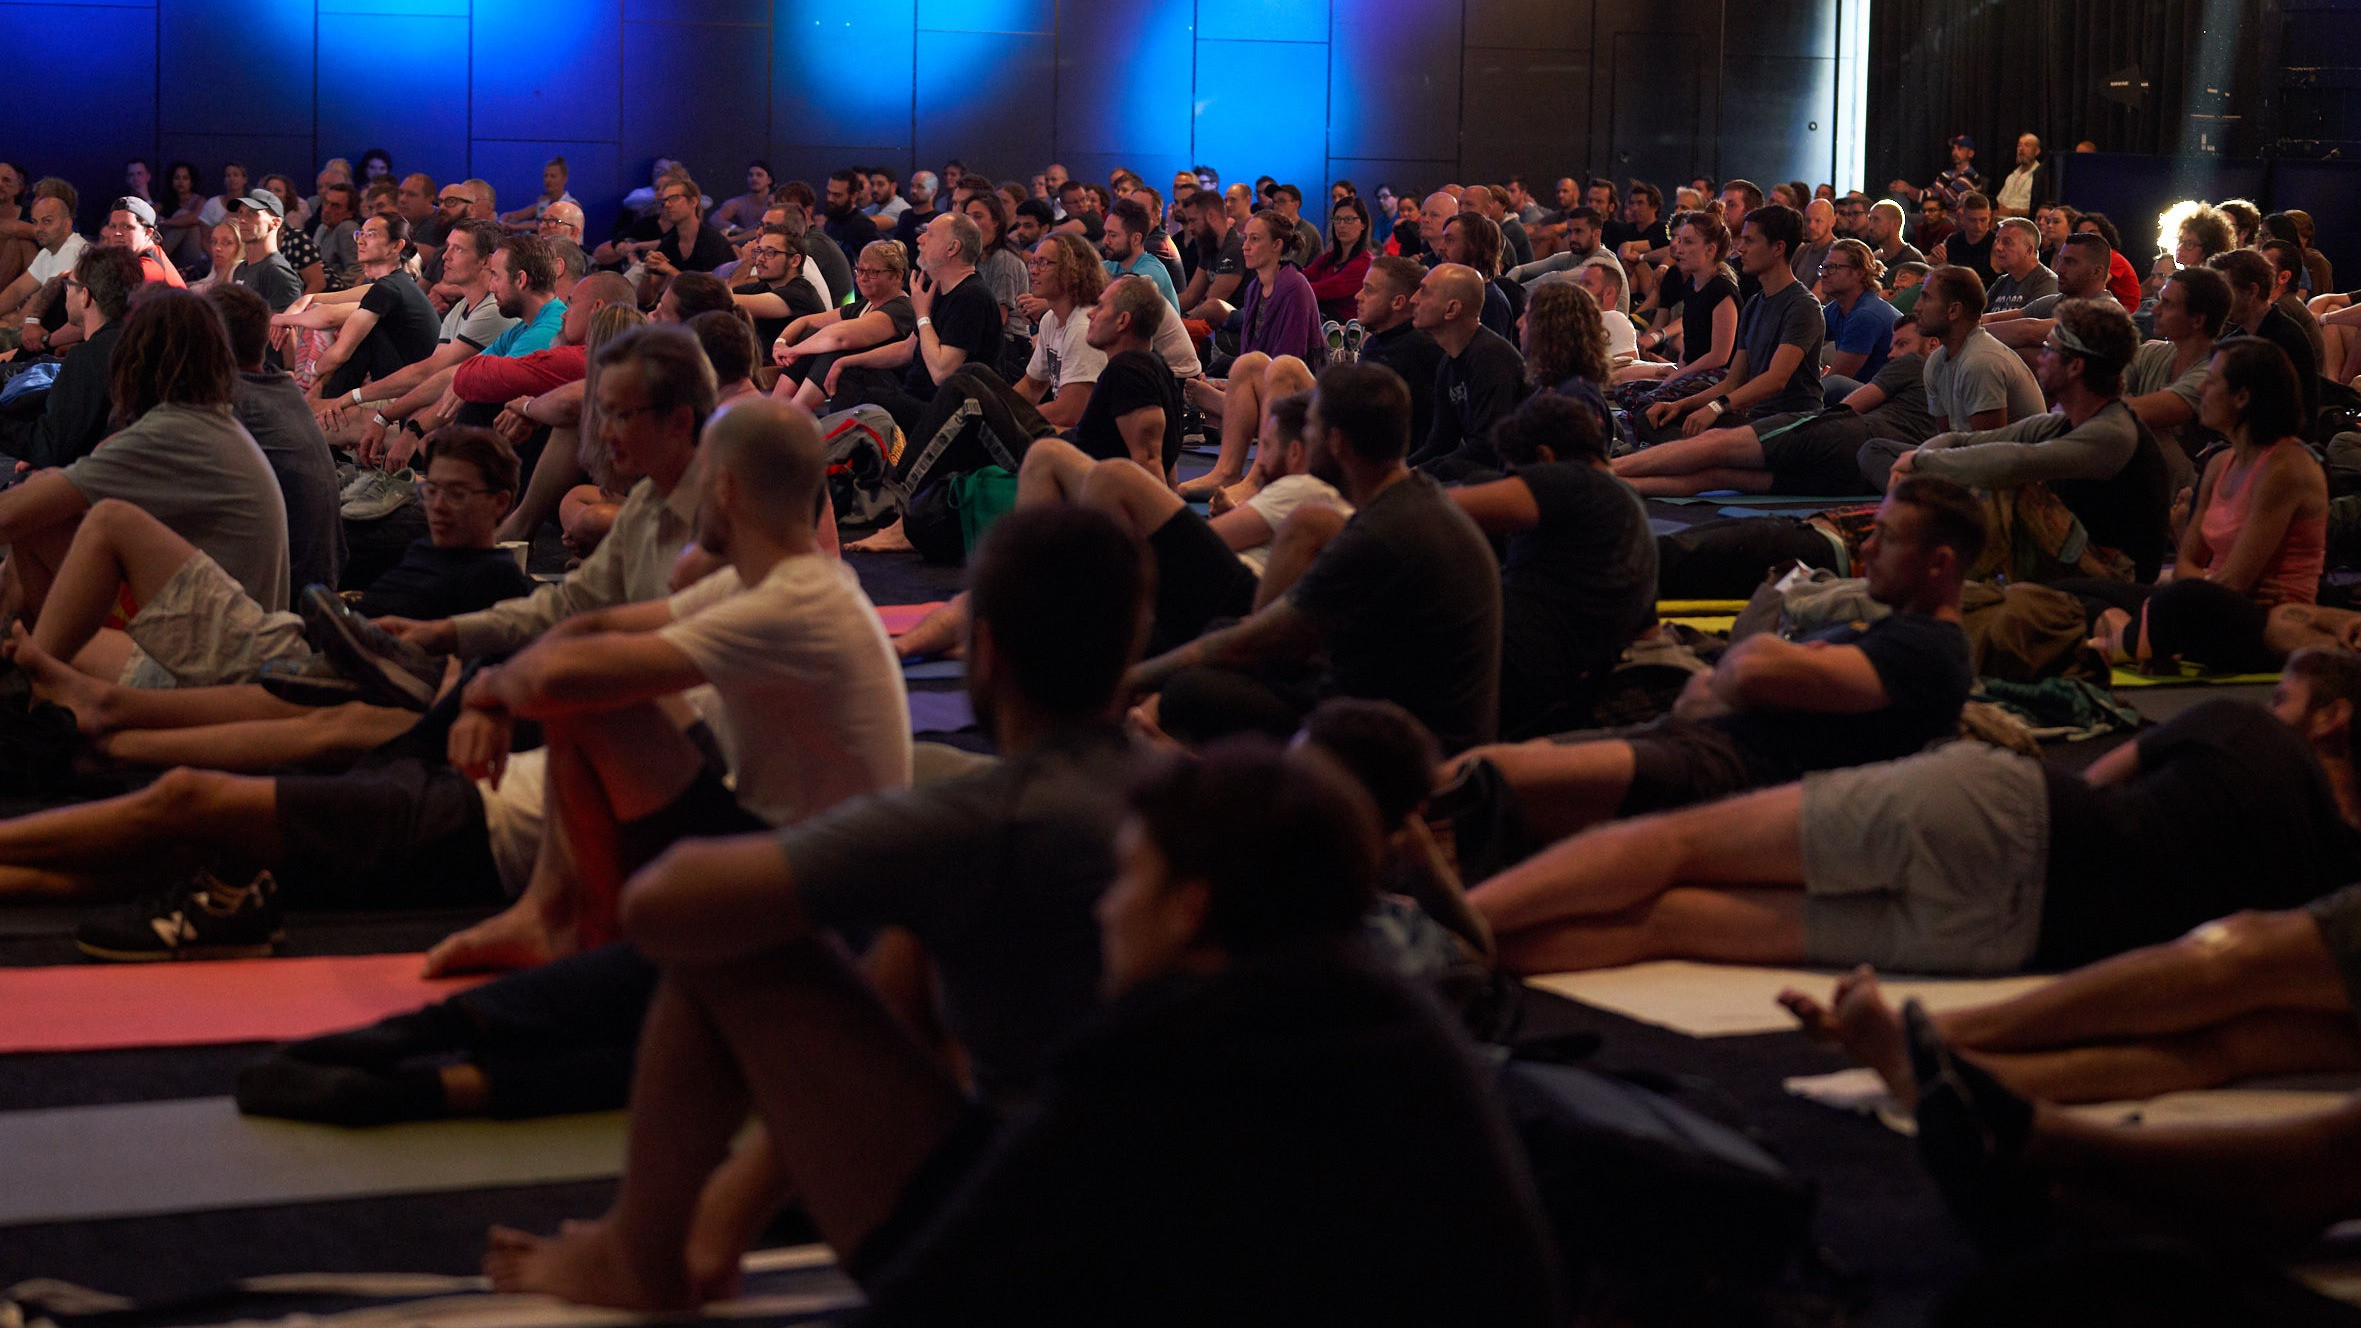 Image 6 of 7 - Experience Meditation to get an impression of Wim Hof Experience — Barcelona at Barcelona